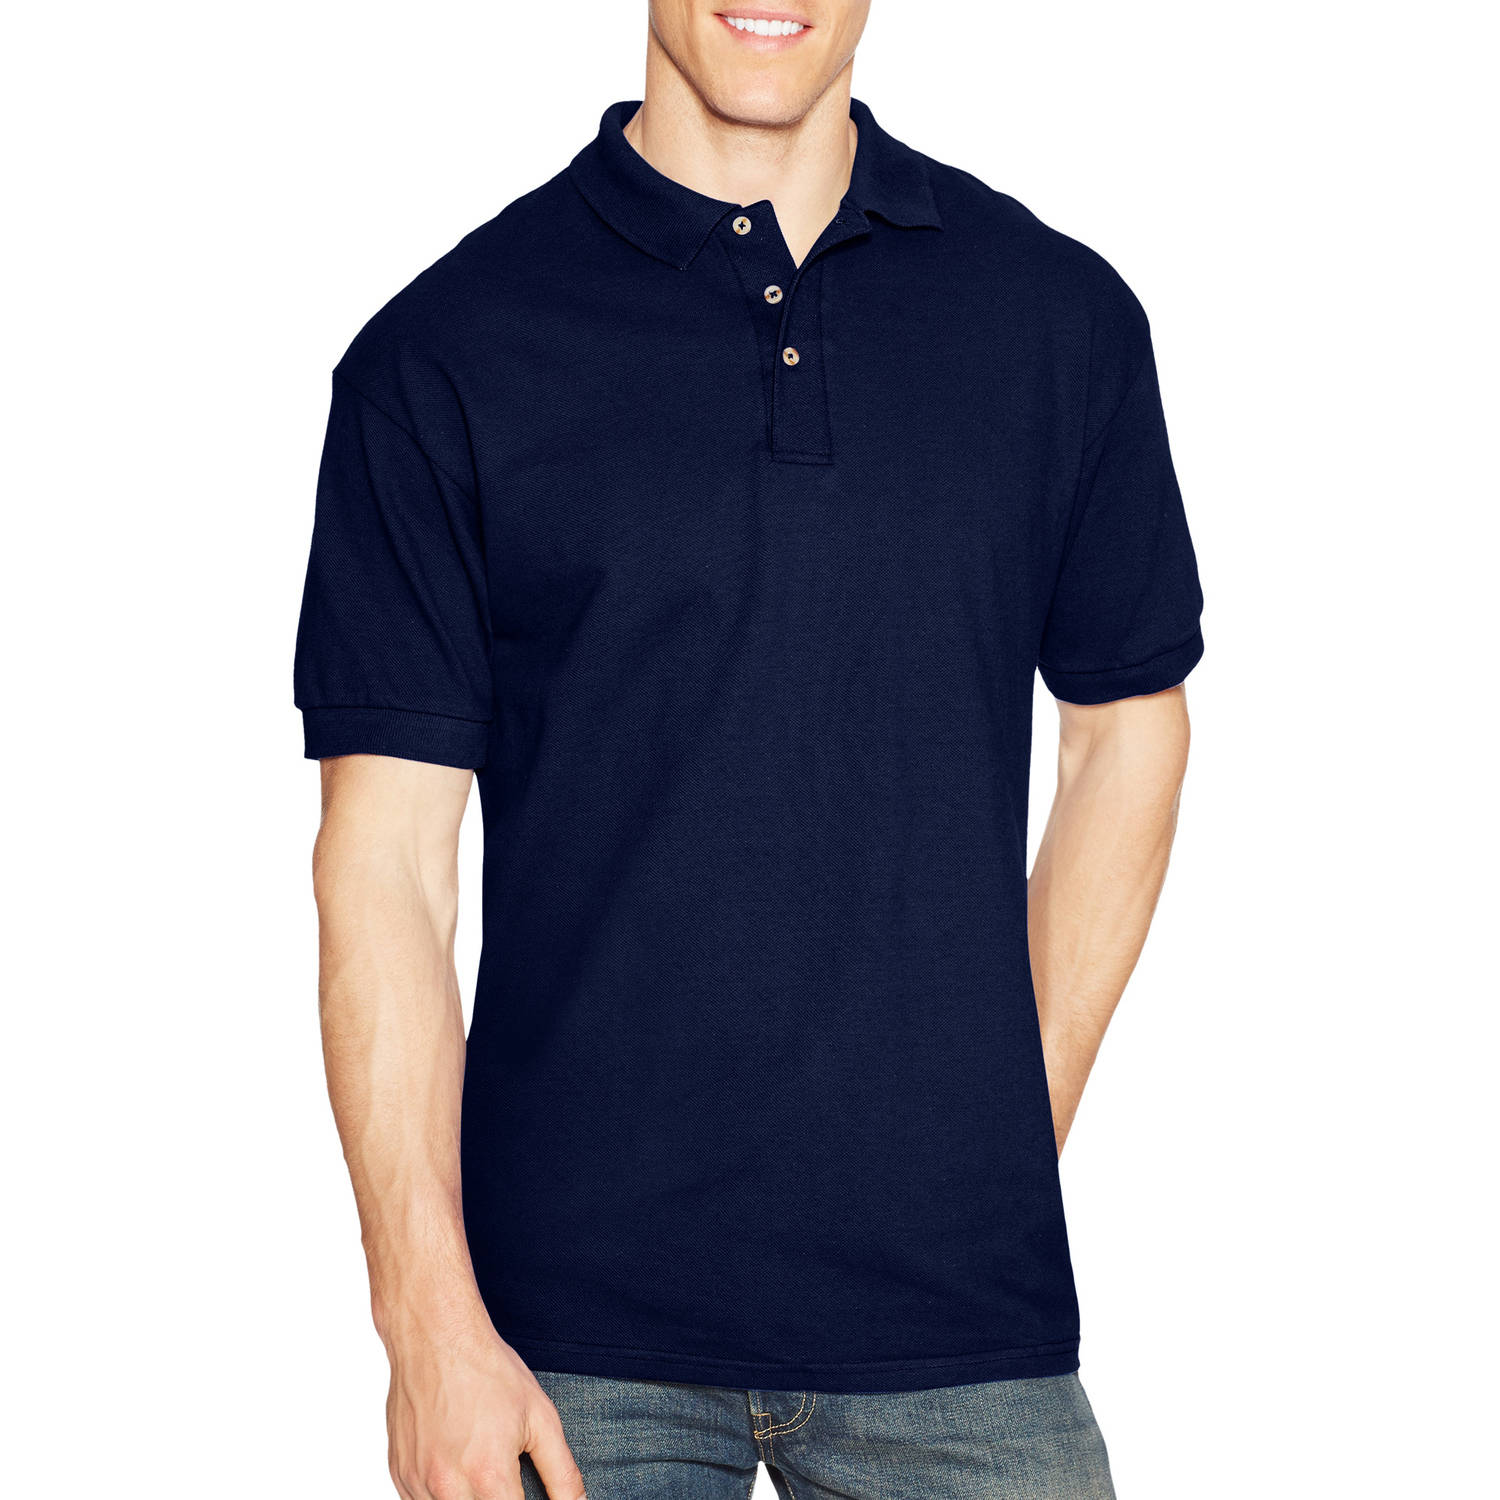 Hanes Big Men's ComfortSoft Pique Polo